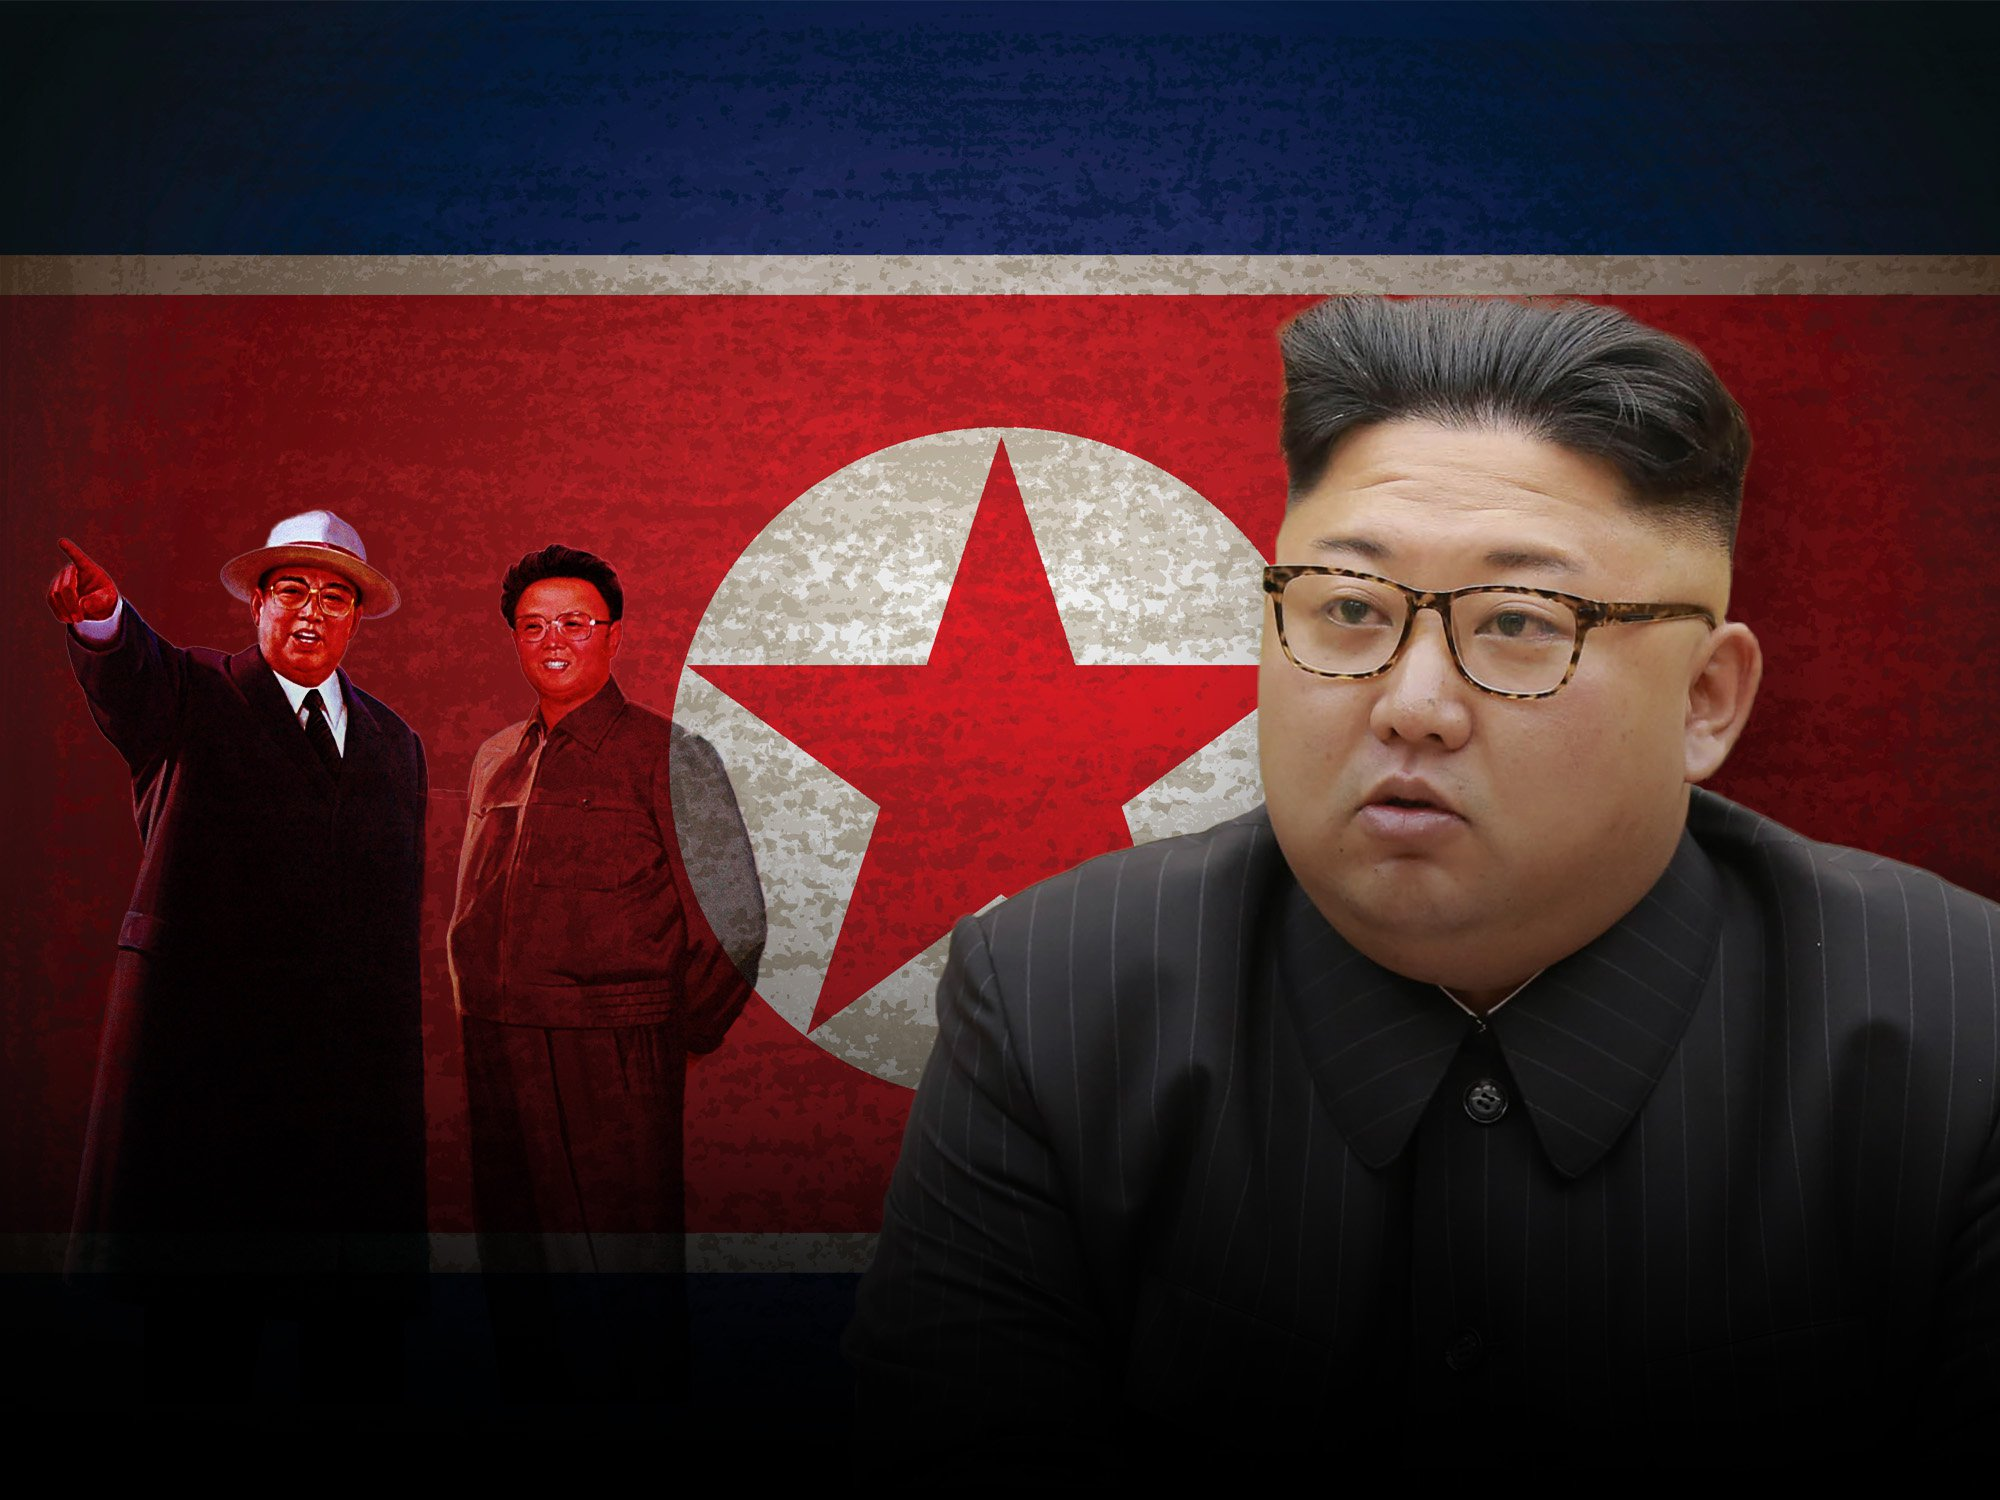 The painful history of North Korea and why it wants nuclear weapons